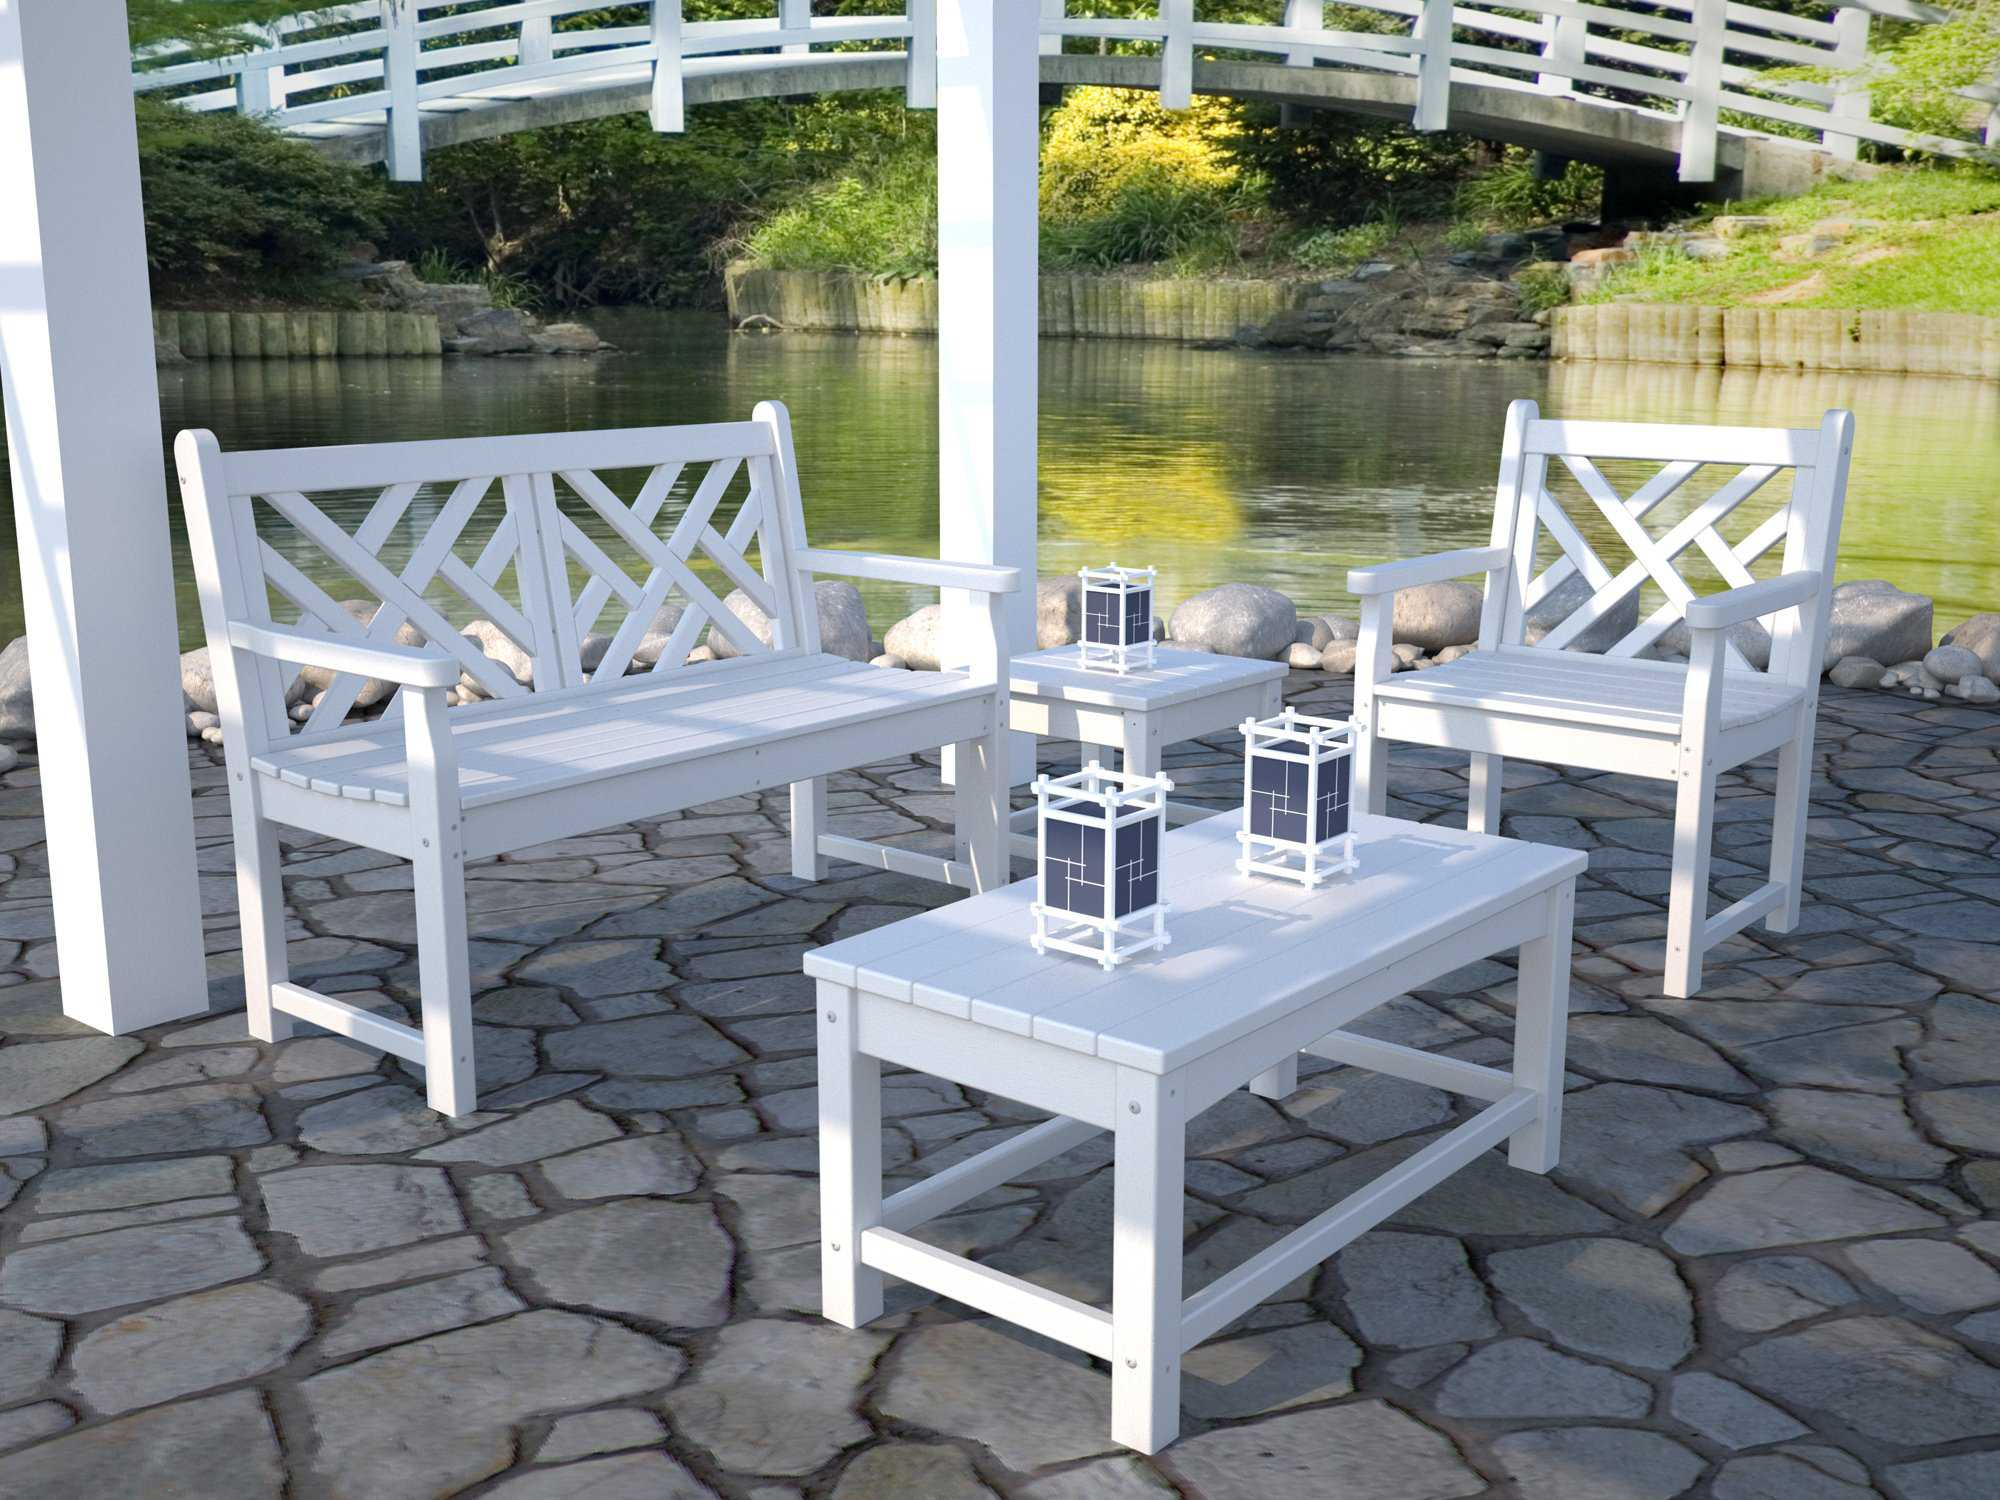 POLYWOOD Chippendale Recycled Plastic Lounge Chair